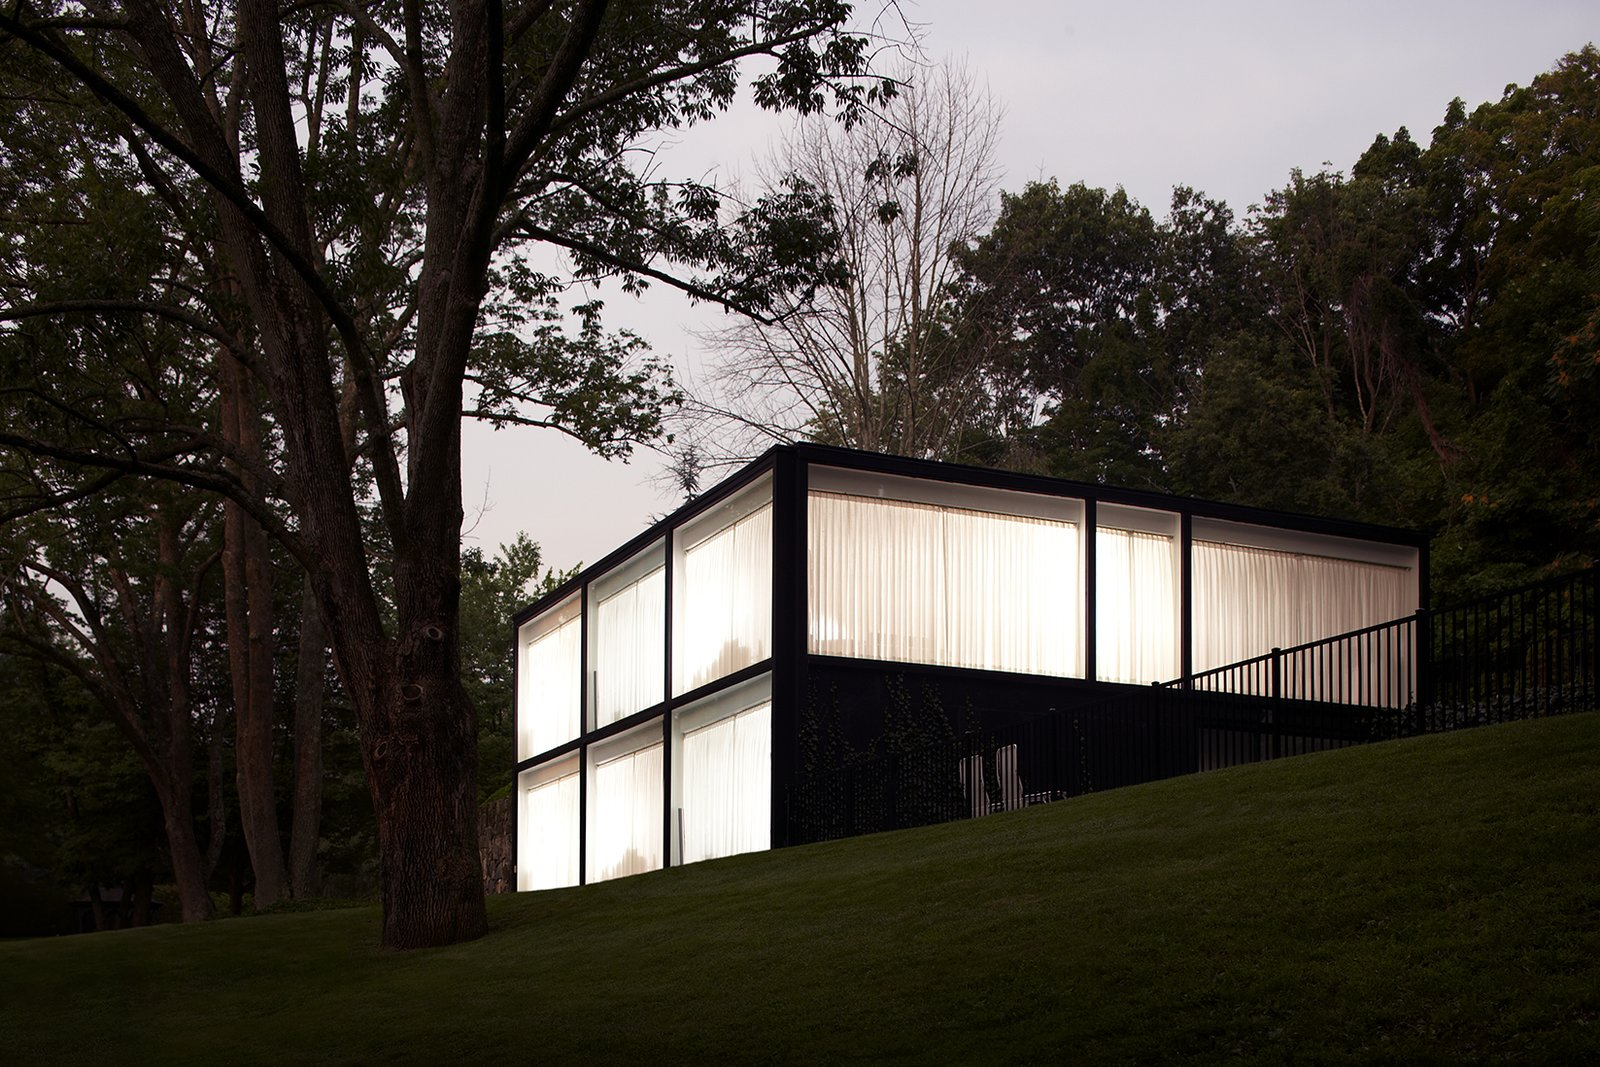 Exterior at dusk.  Glass House by T Seisser